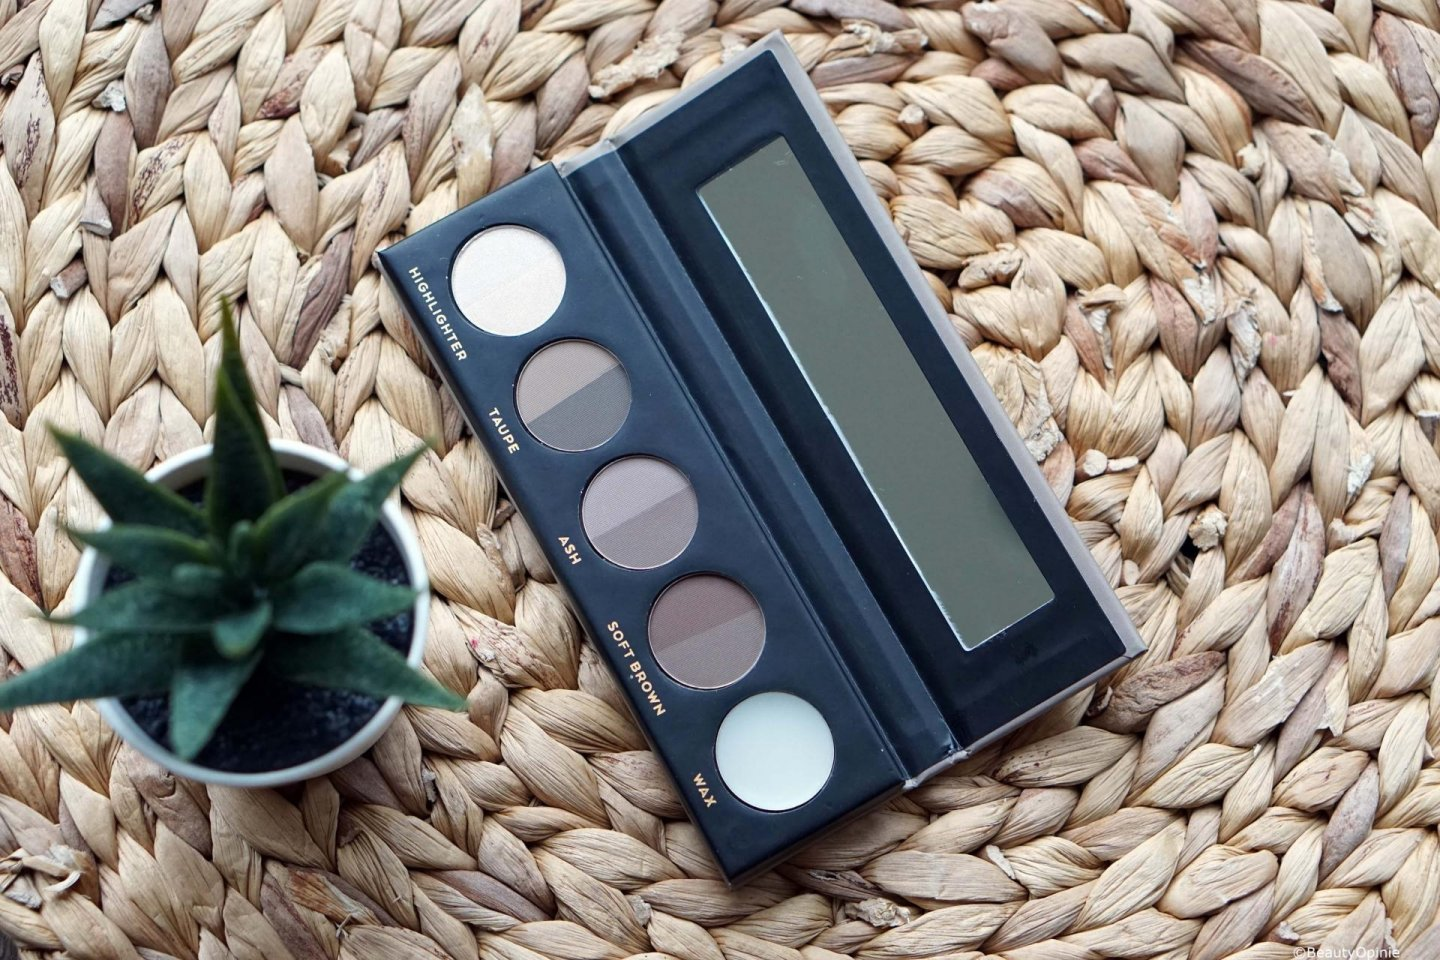 Review Catrice Strong performance professional brow palette